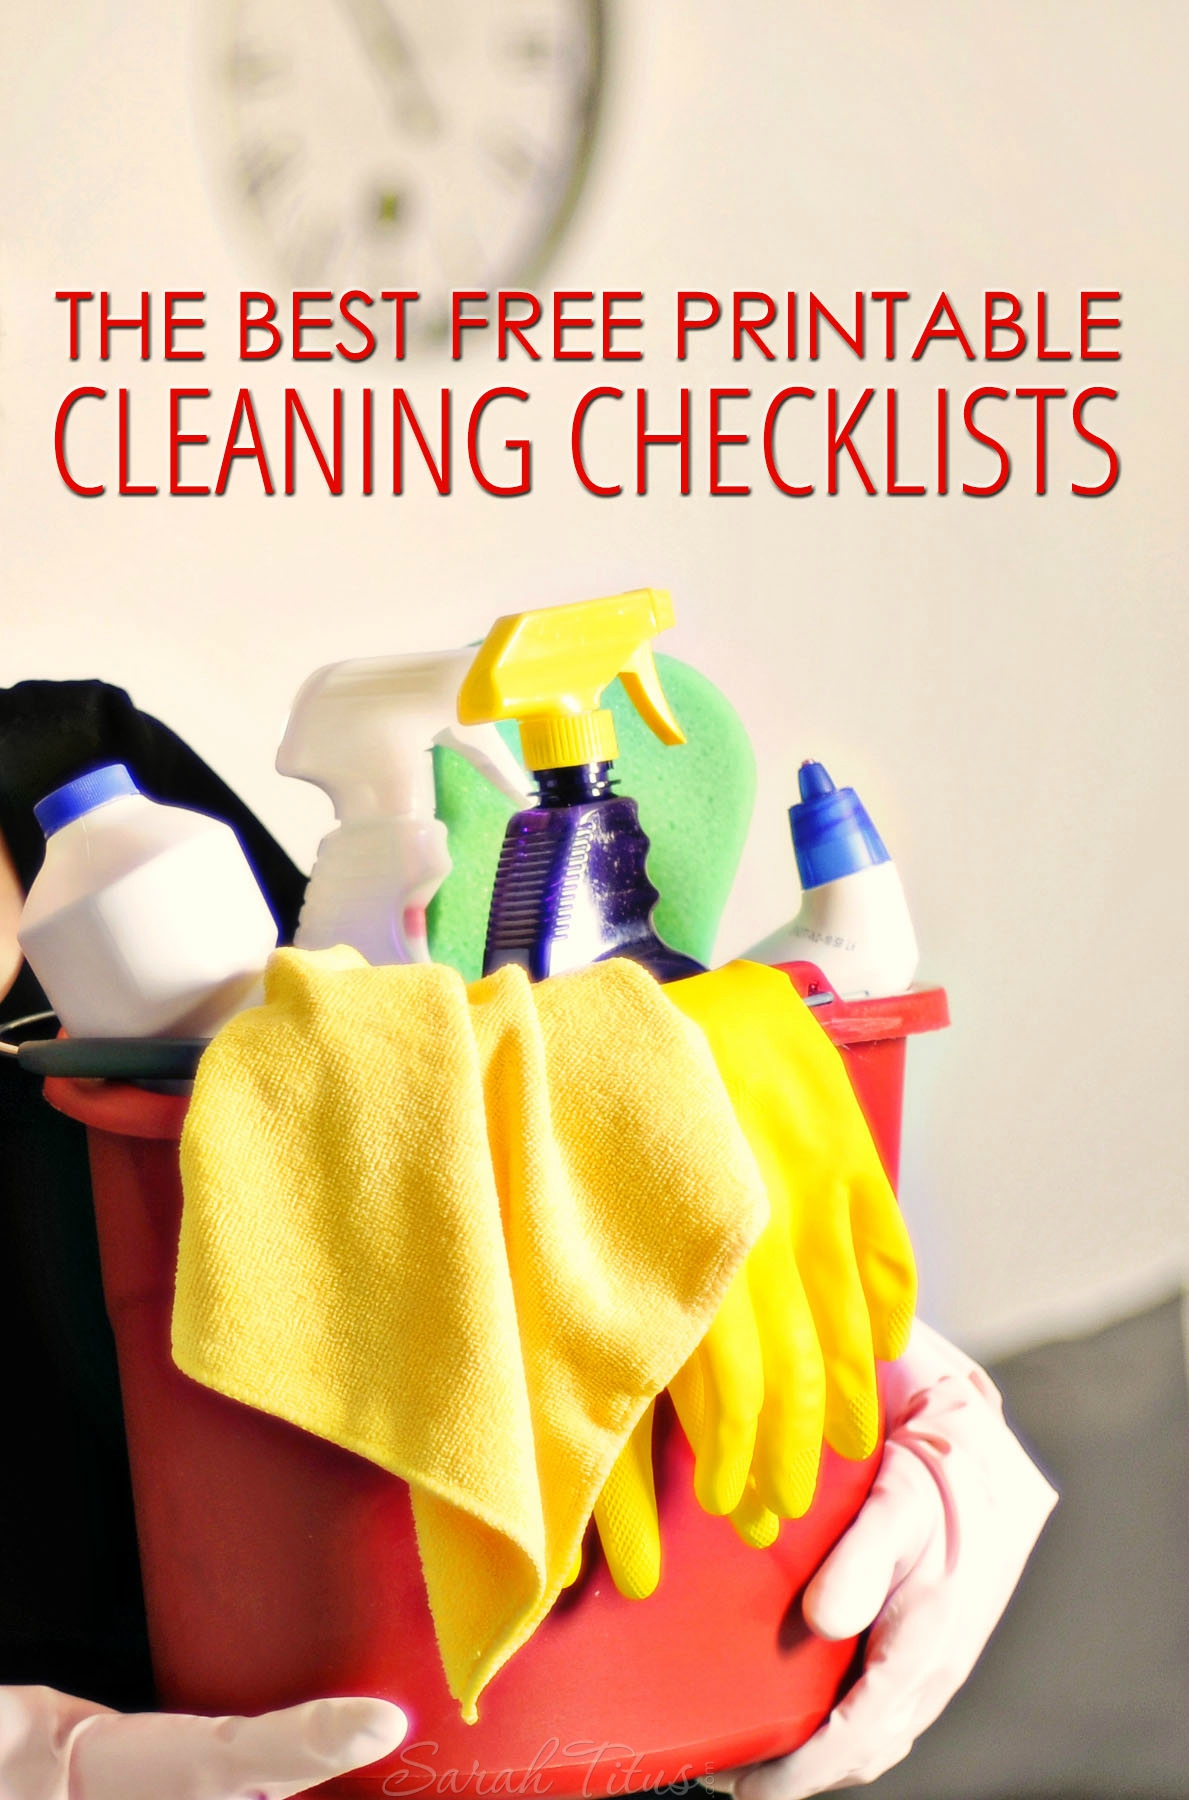 The Best Free Printable Cleaning Checklists